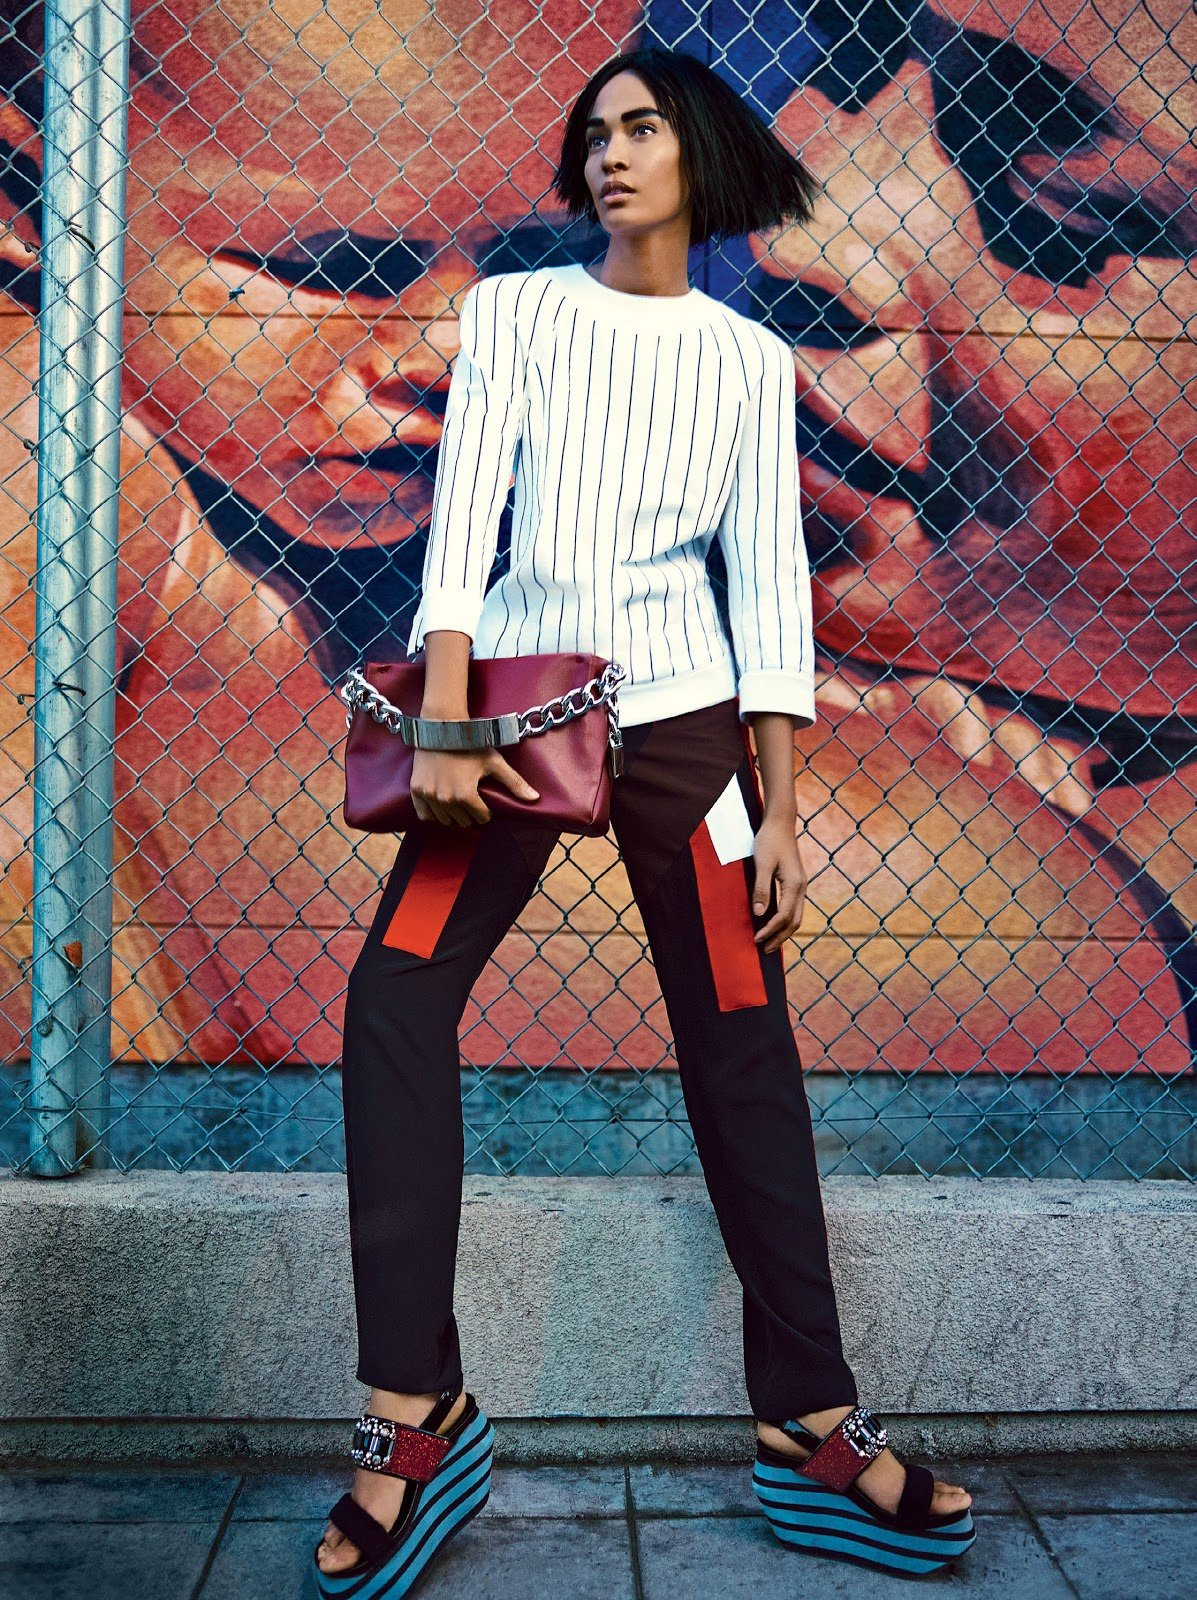 Joan-Smalls-Vogue-US-March-2014-FAB-Magazine (4)